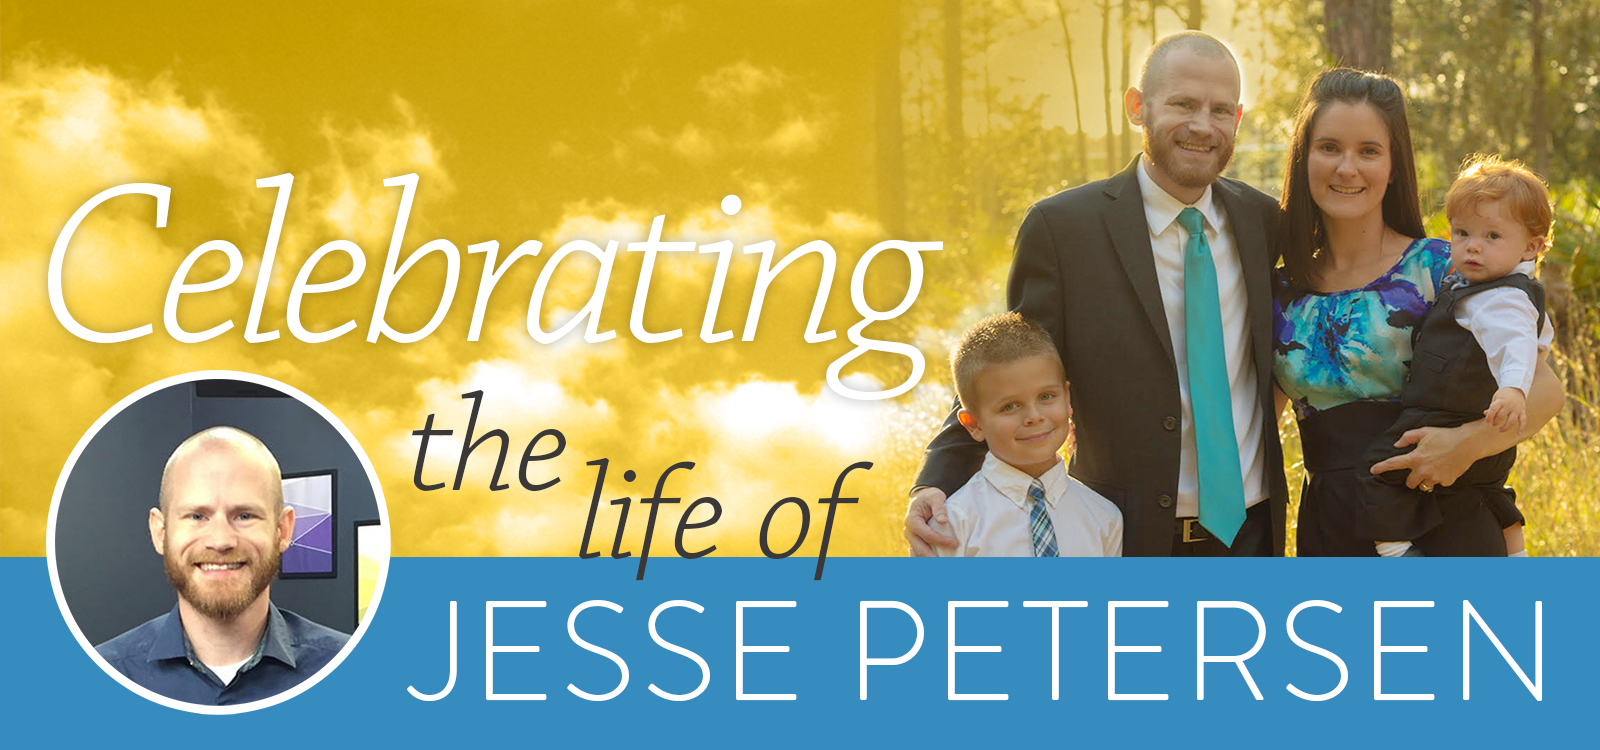 Images of Jesse and family overlaid with 'Celebrating the Life of Jesse Petersen'